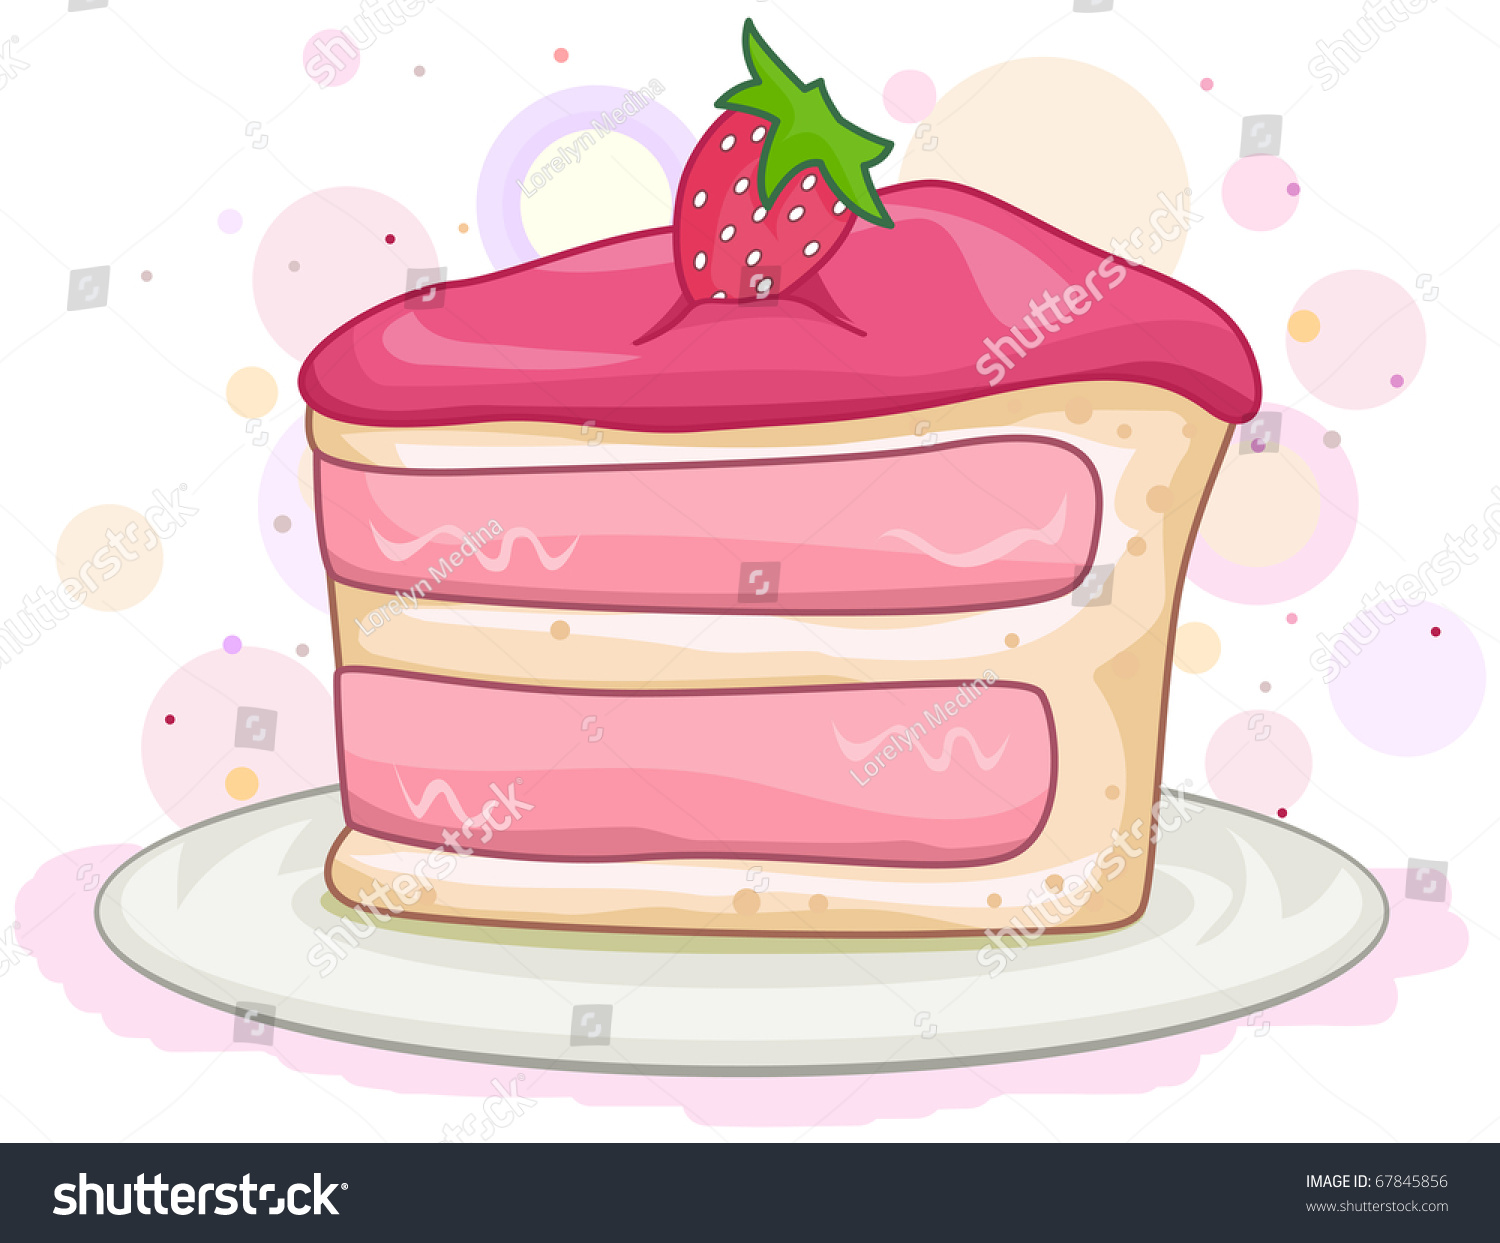 hight resolution of illustration of a slice of cake with a strawberry on top